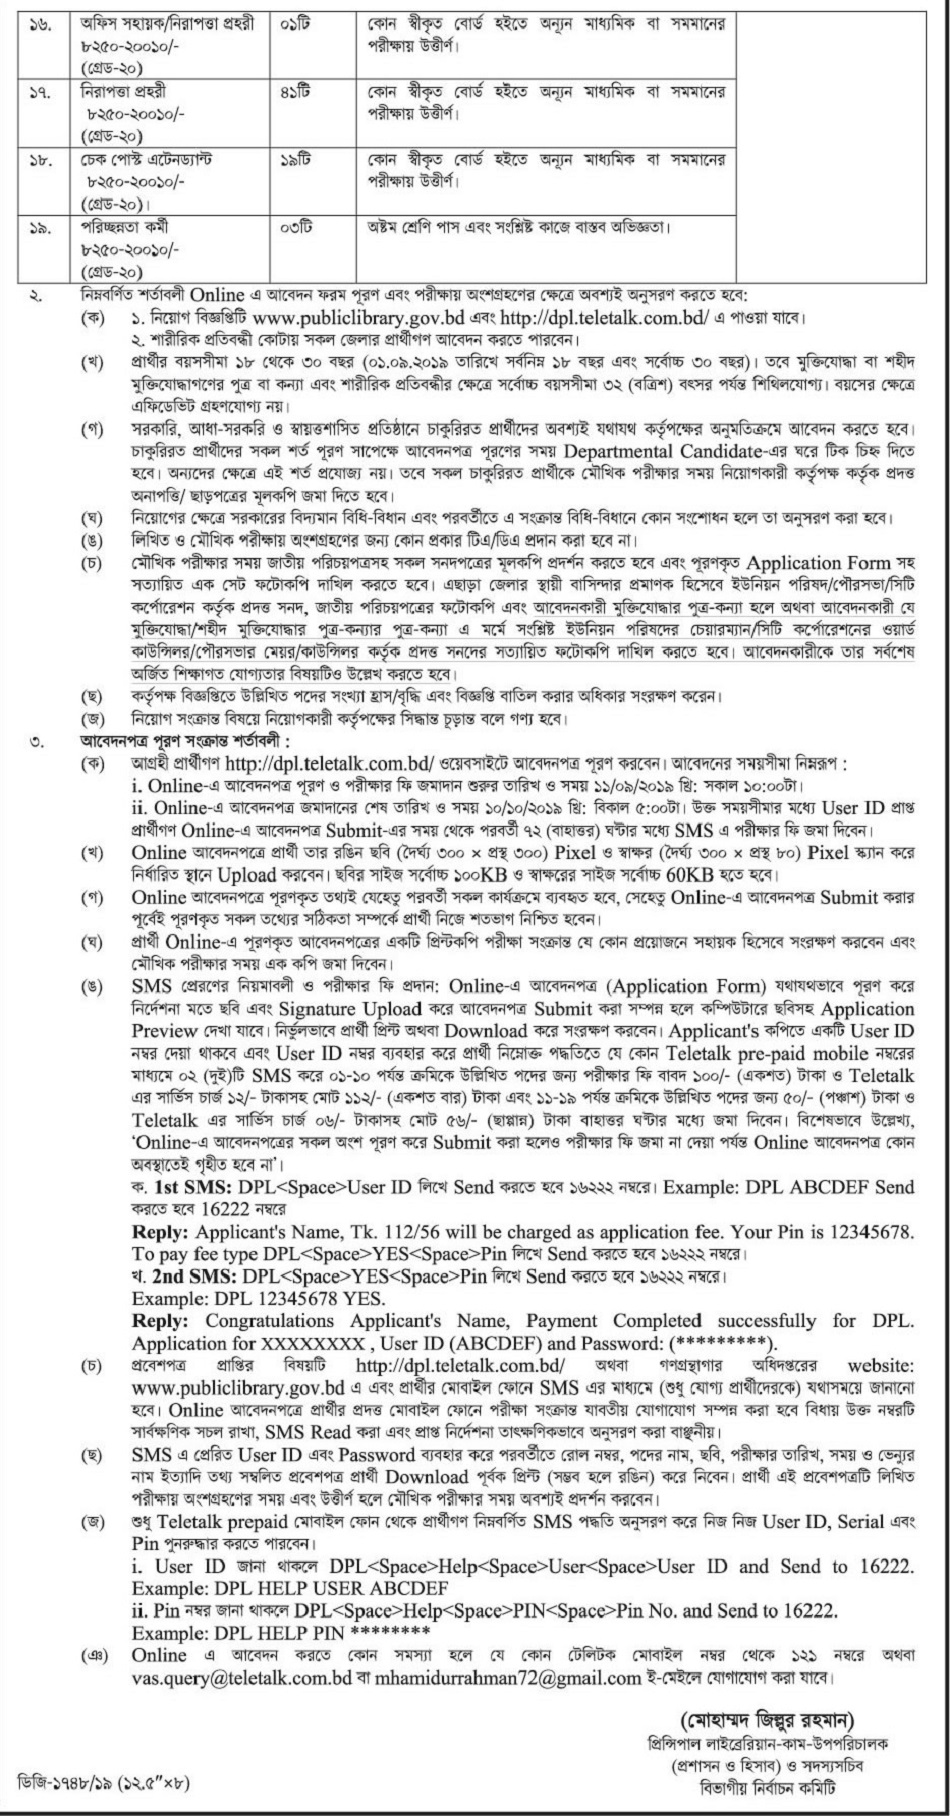 Ministry-of-Cultural-Affairs-Jobs-Circular-2019